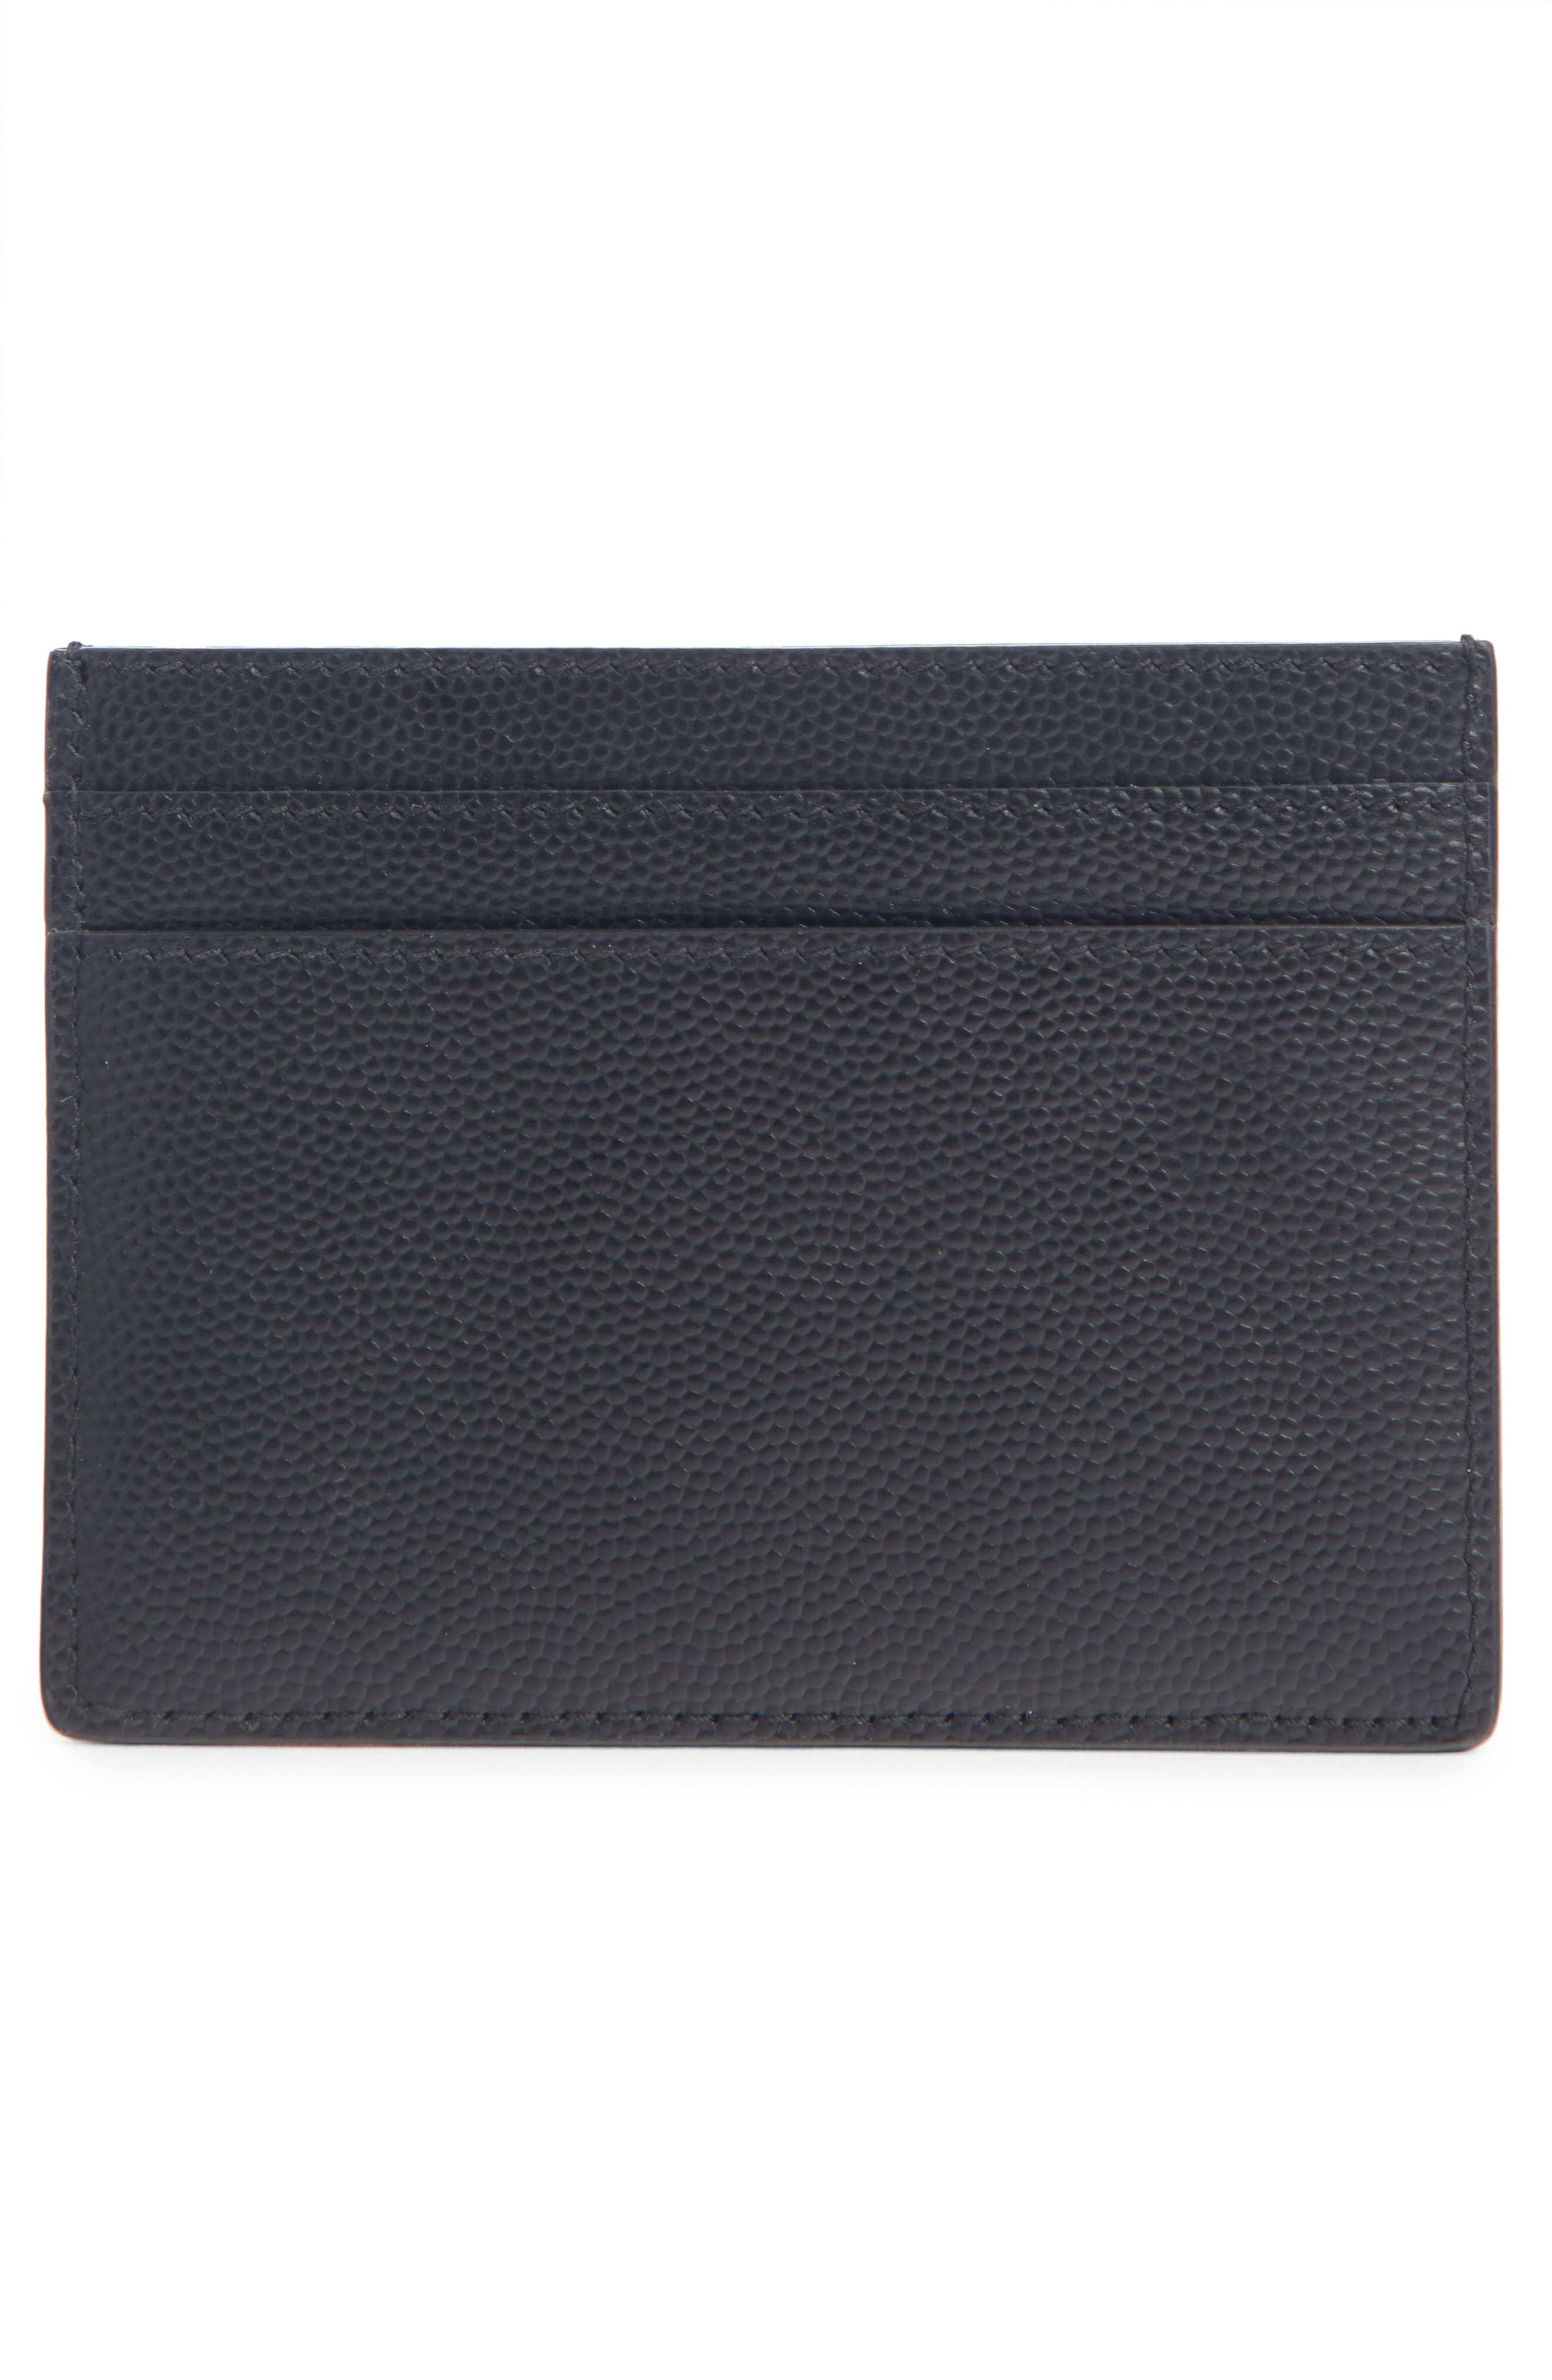 Classic Leather Card Case,                             Alternate thumbnail 2, color,                             001